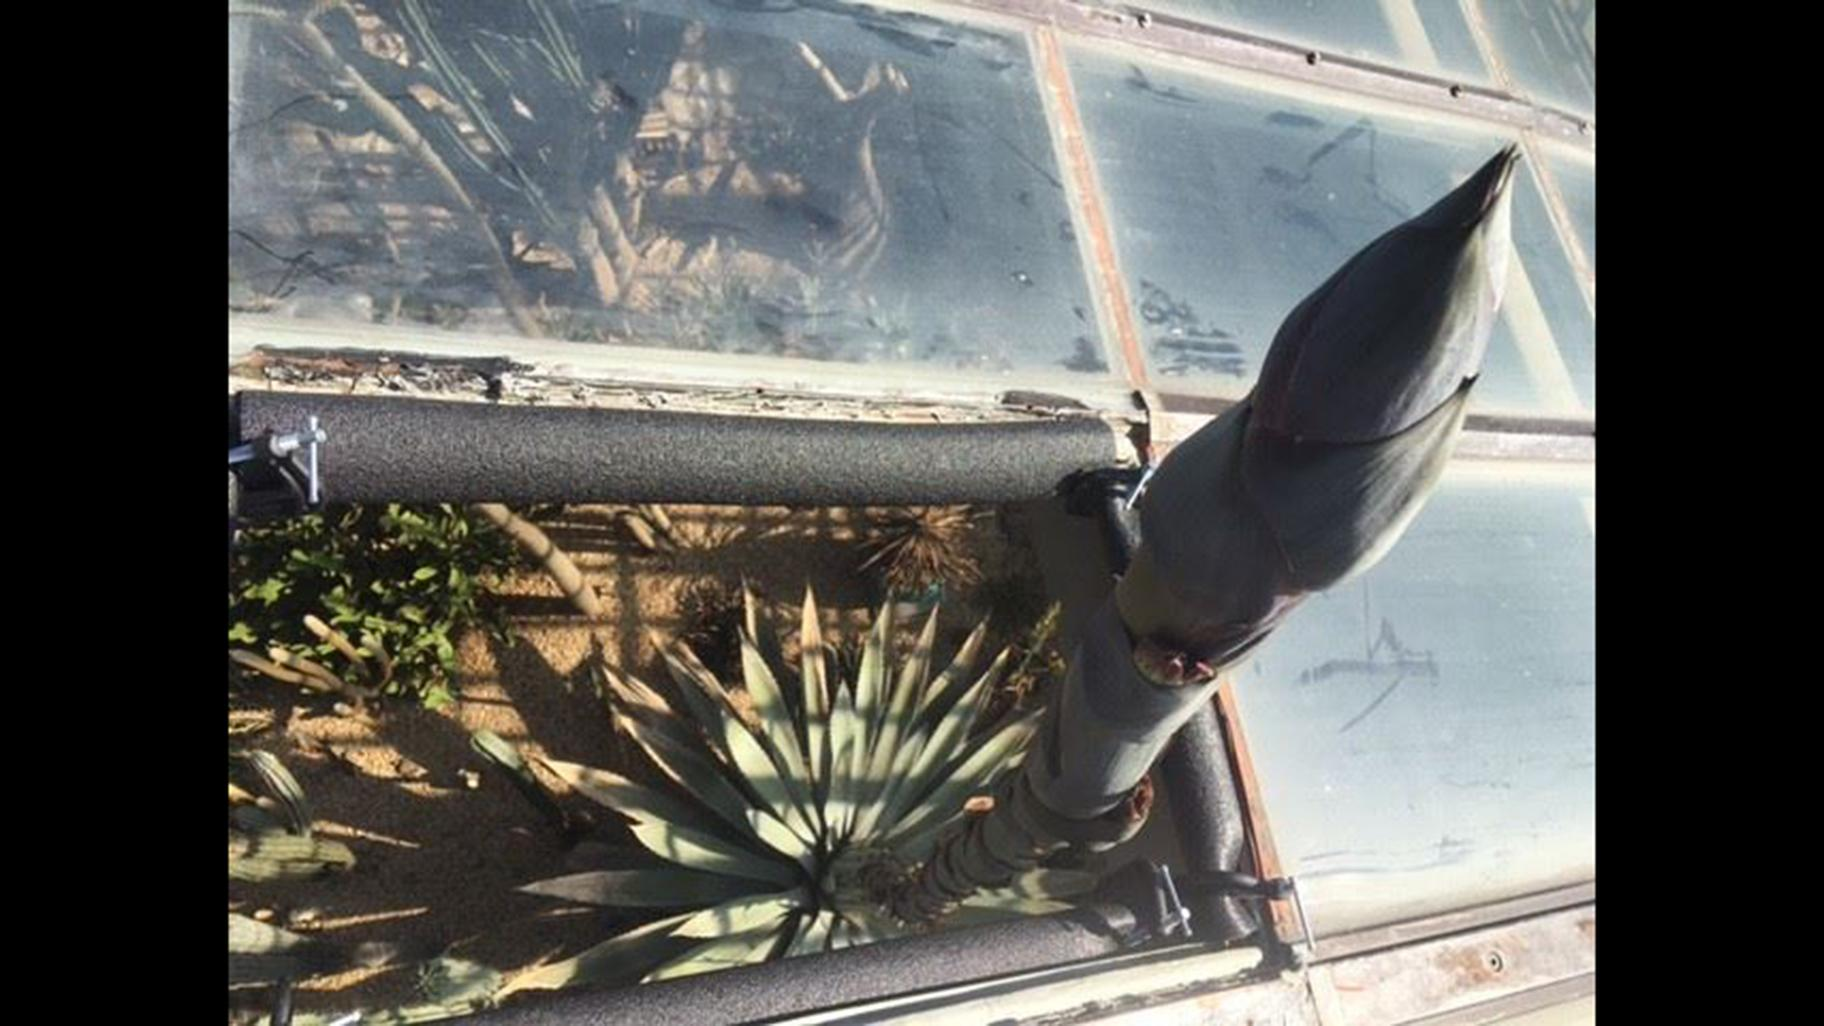 The Agave americana plant at Garfield Park Conservatory, pictured here on April 27, 2019, measures 33 feet, 6 inches tall as of June 5. It is now growing through the greenhouse roof. (Courtesy Garfield Park Conservatory)